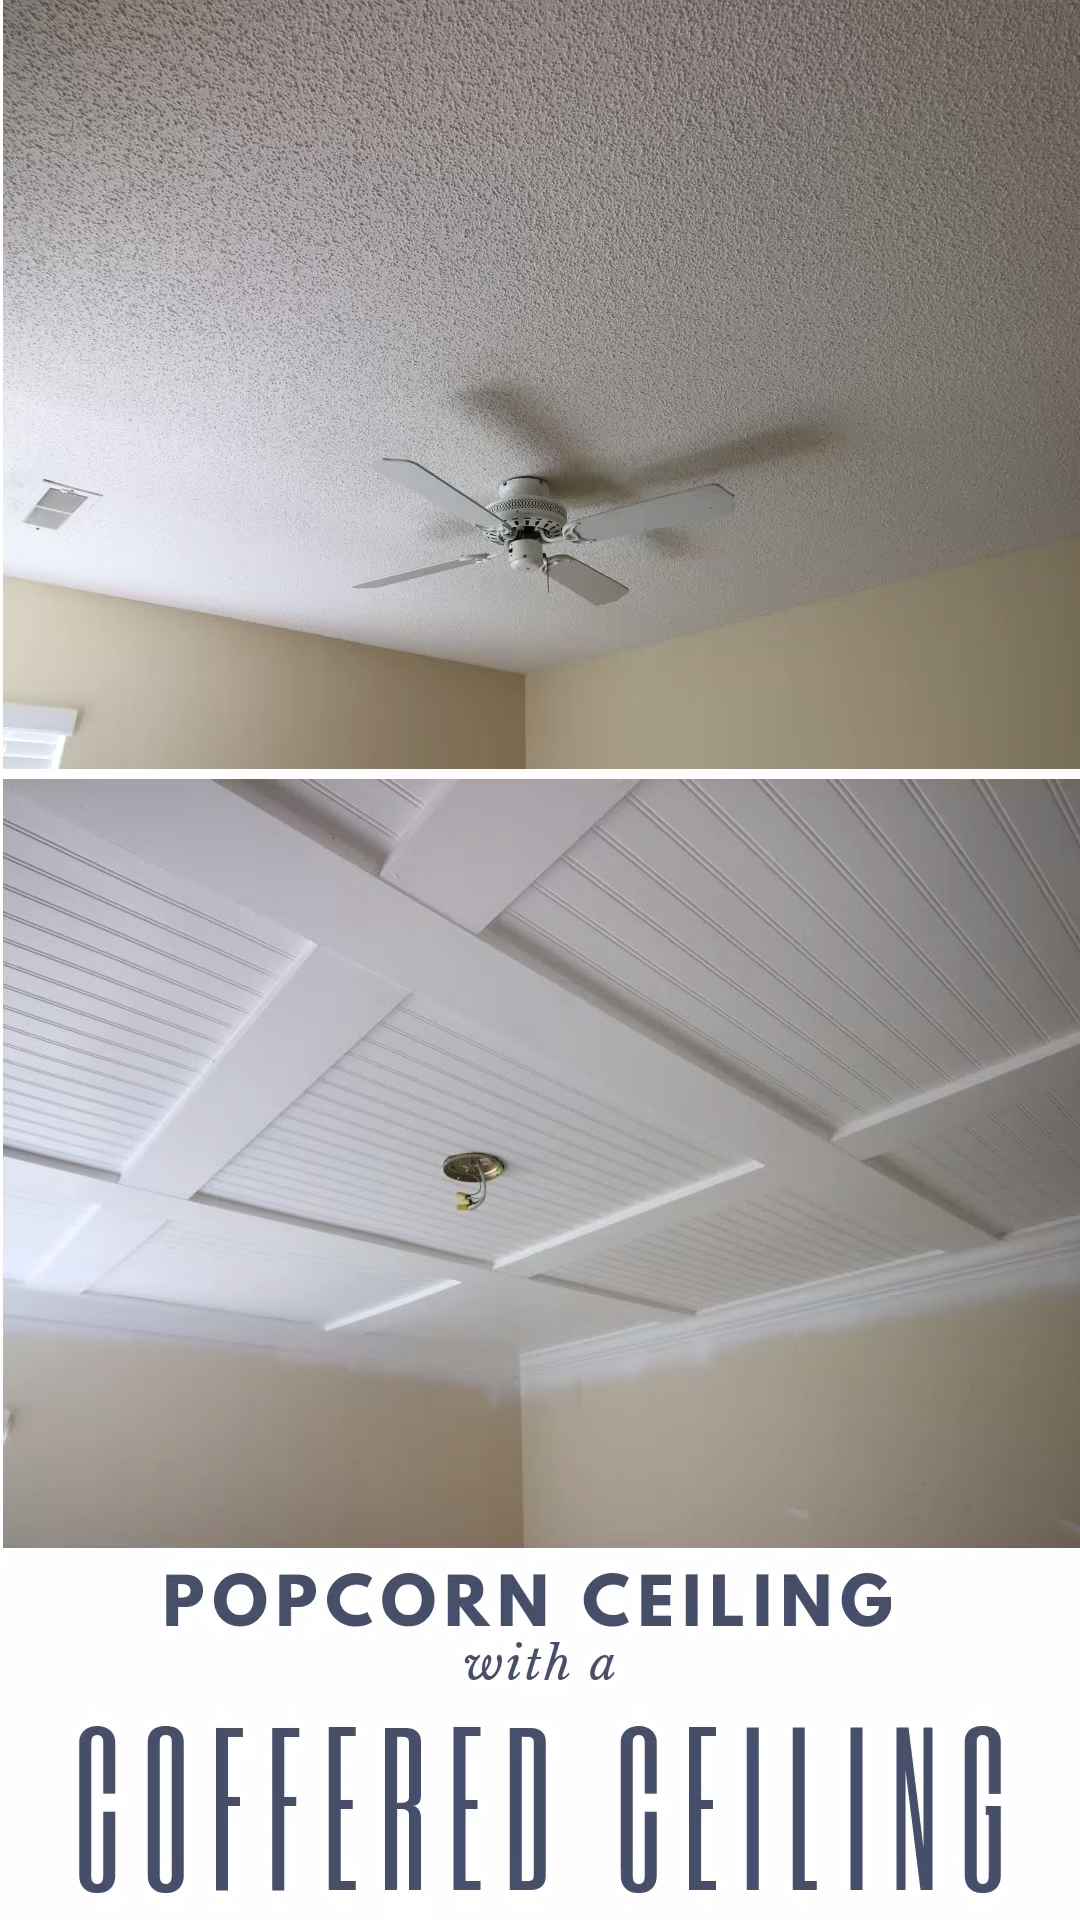 Hate your popcorn ceilings? Here is how to cover them with a DIY beadboard coffered ceiling! #popcornceiling #homeimprovement #cofferedceiling